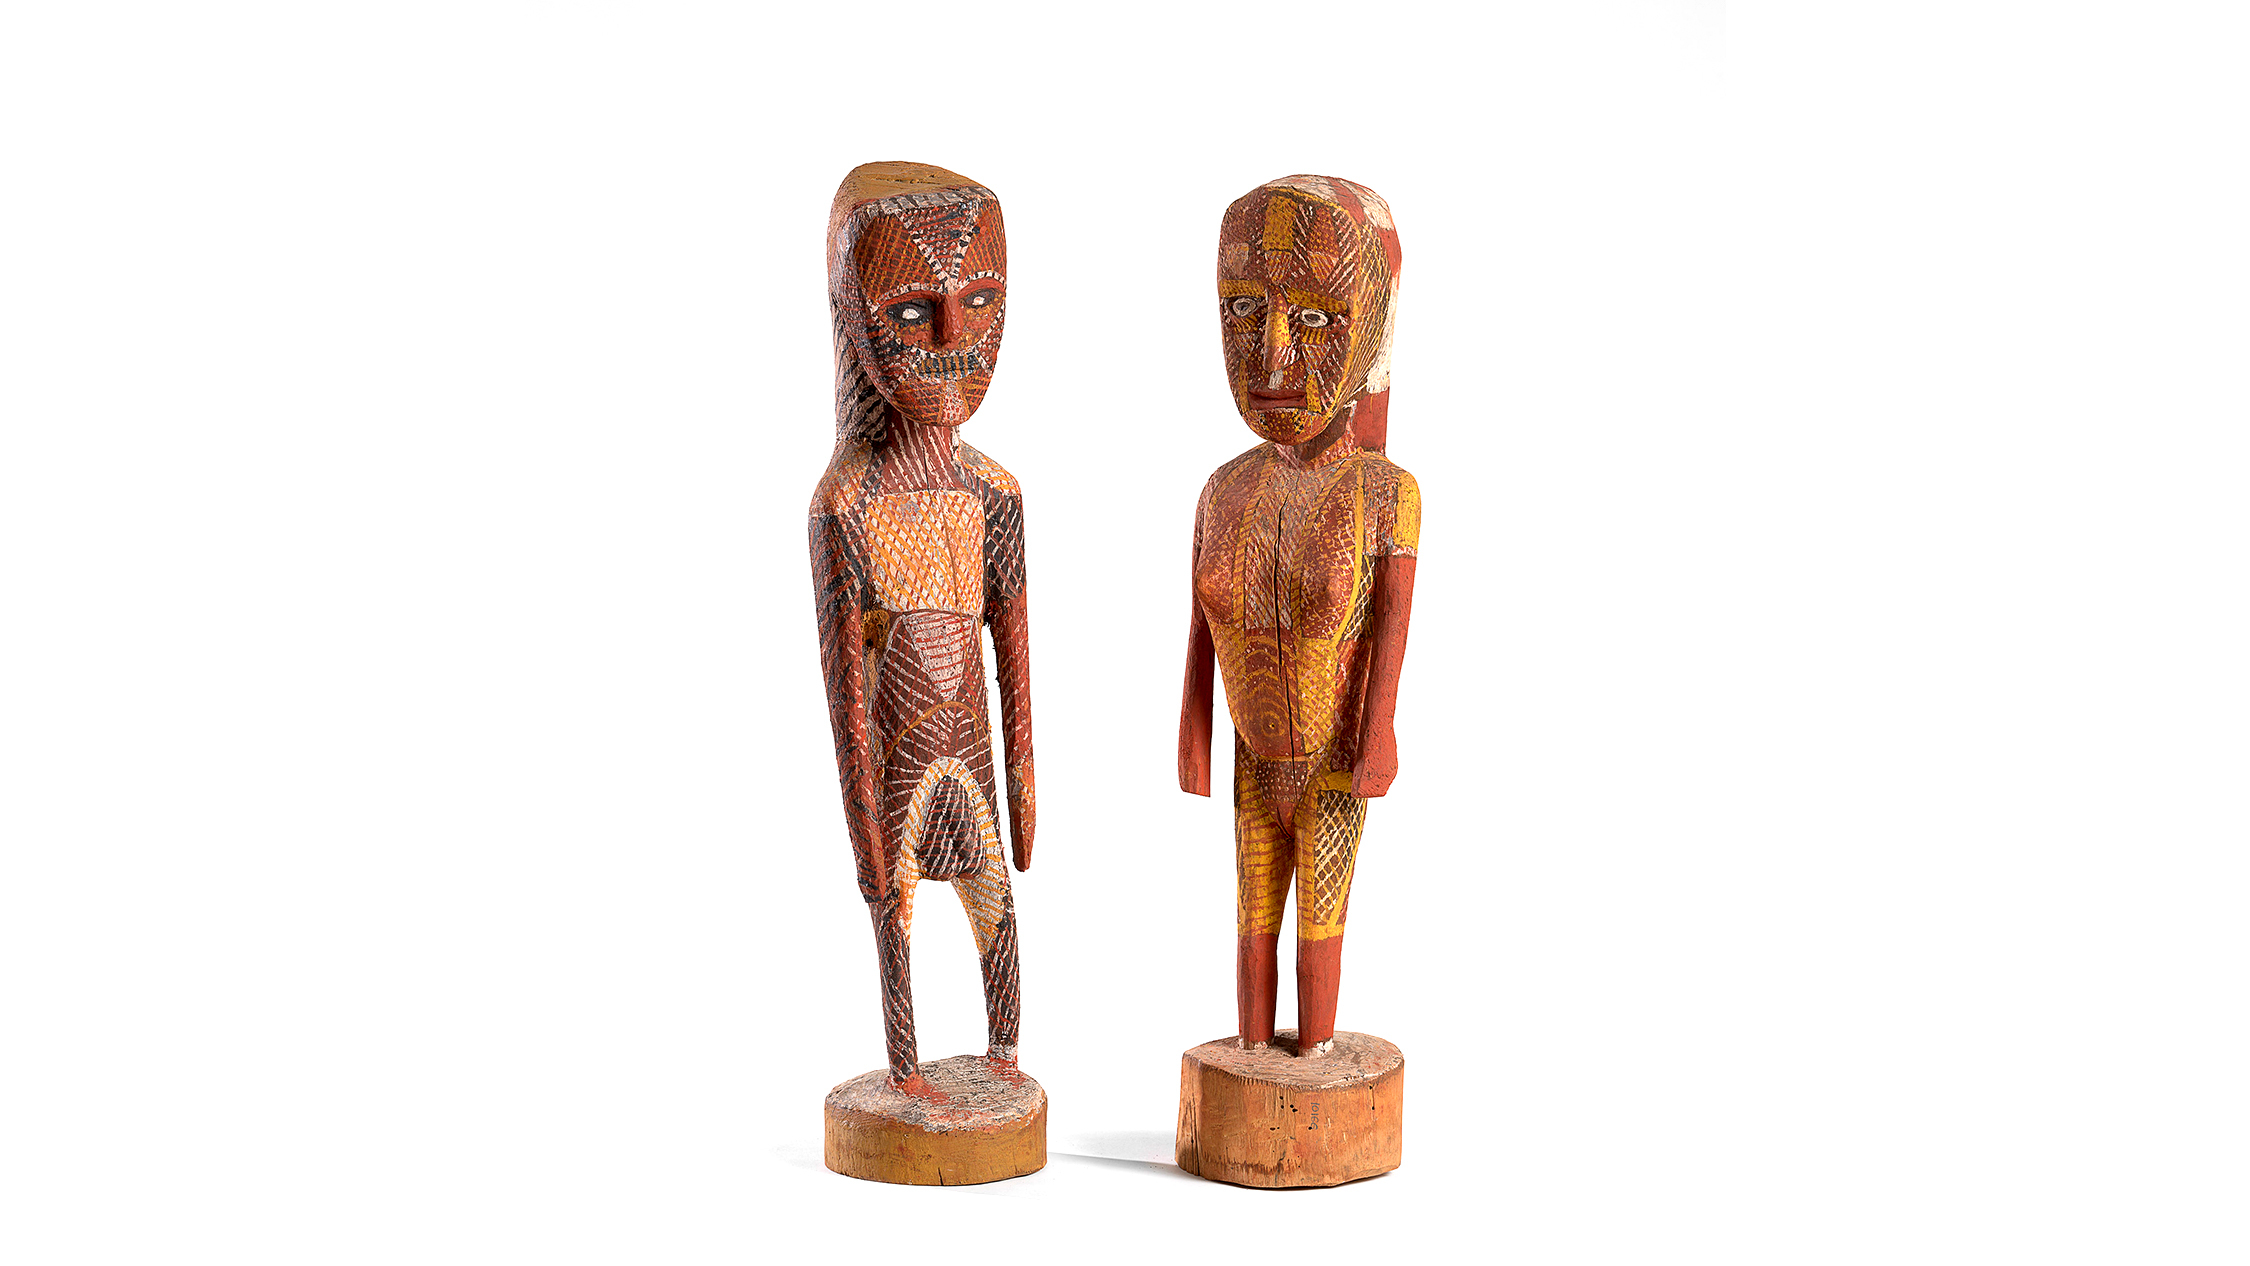 Tiwi Islands Exhibition NGV